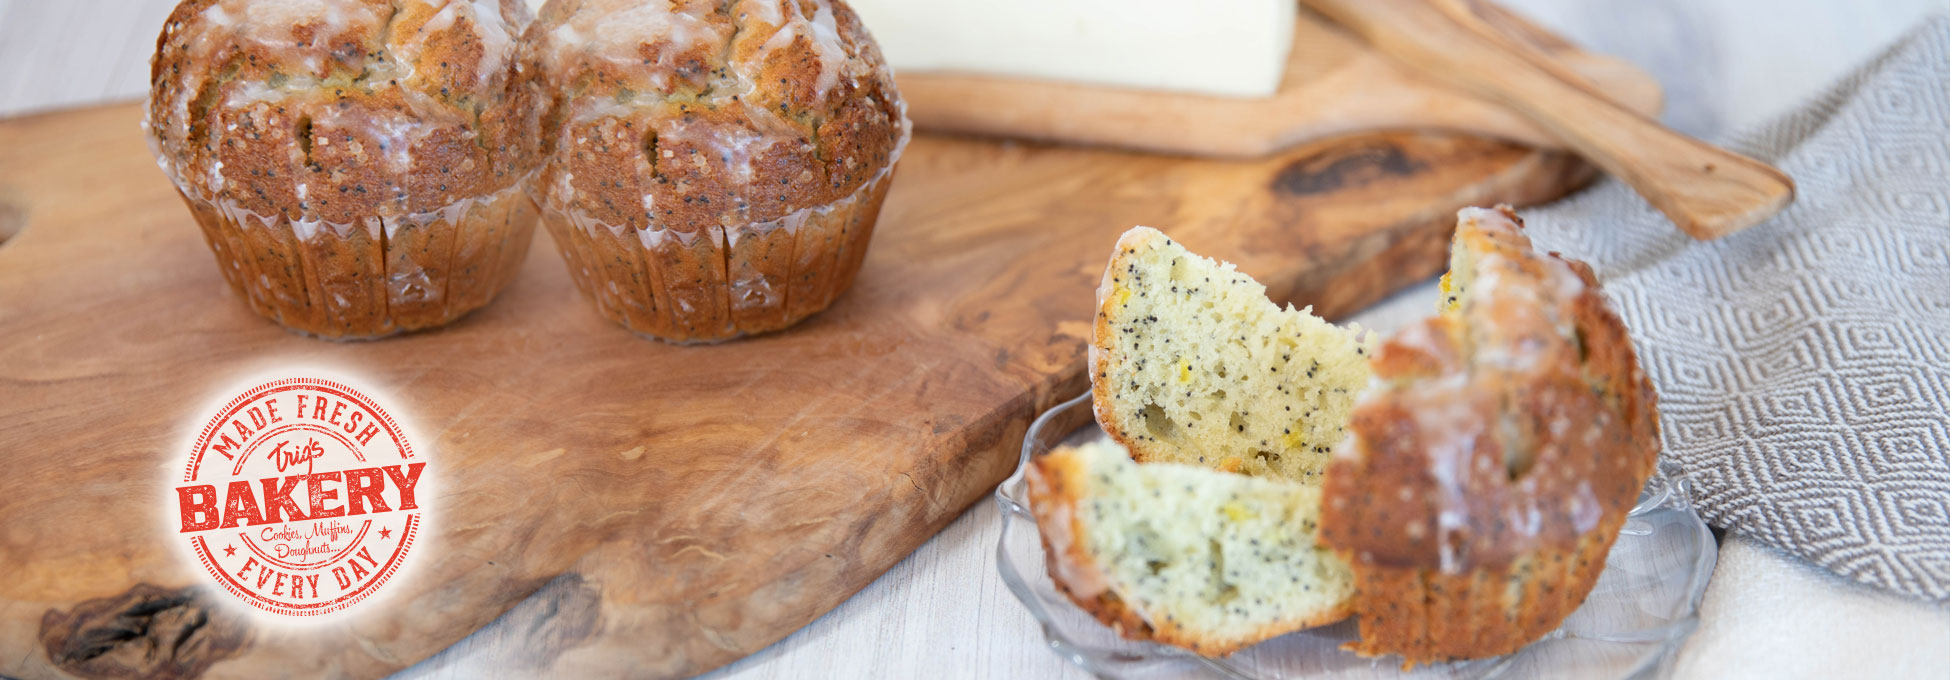 trigs-homepg-lemon-poppyseed-muffins.jpg